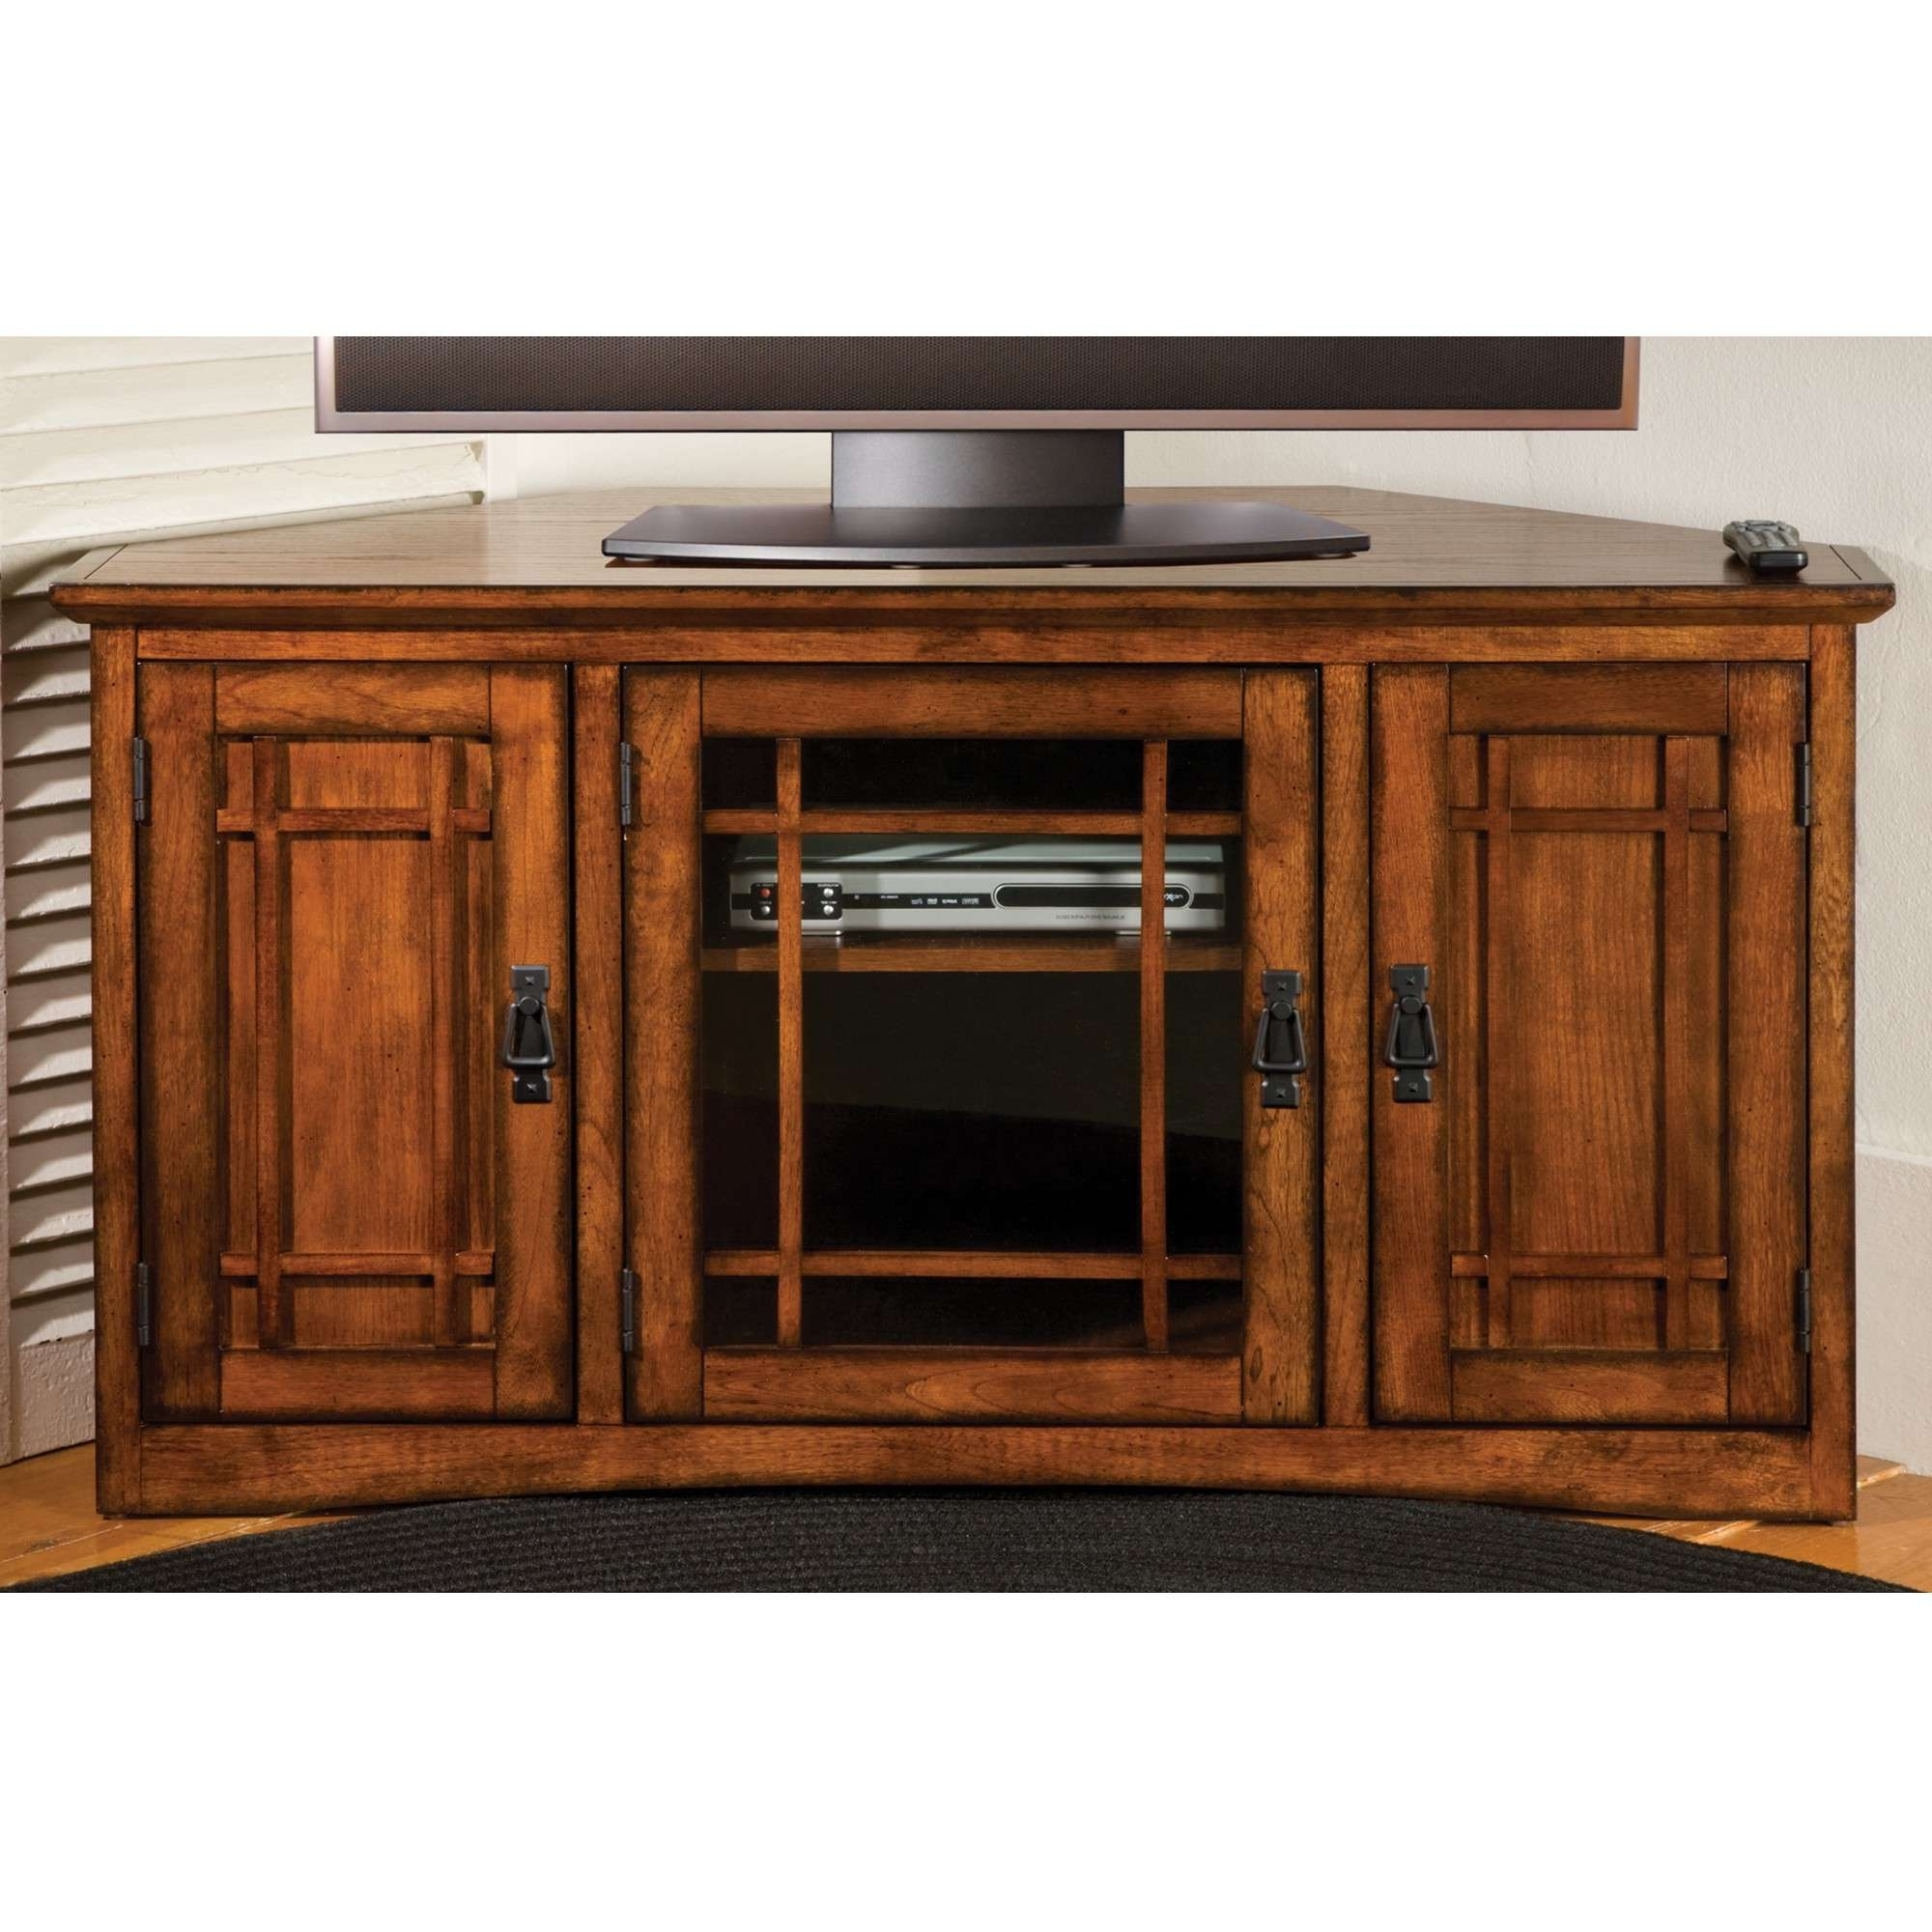 Awesome Corner Tv Cabinet With Doors For Your Lovely Home With Wooden Tv Stands With Glass Doors (View 14 of 15)